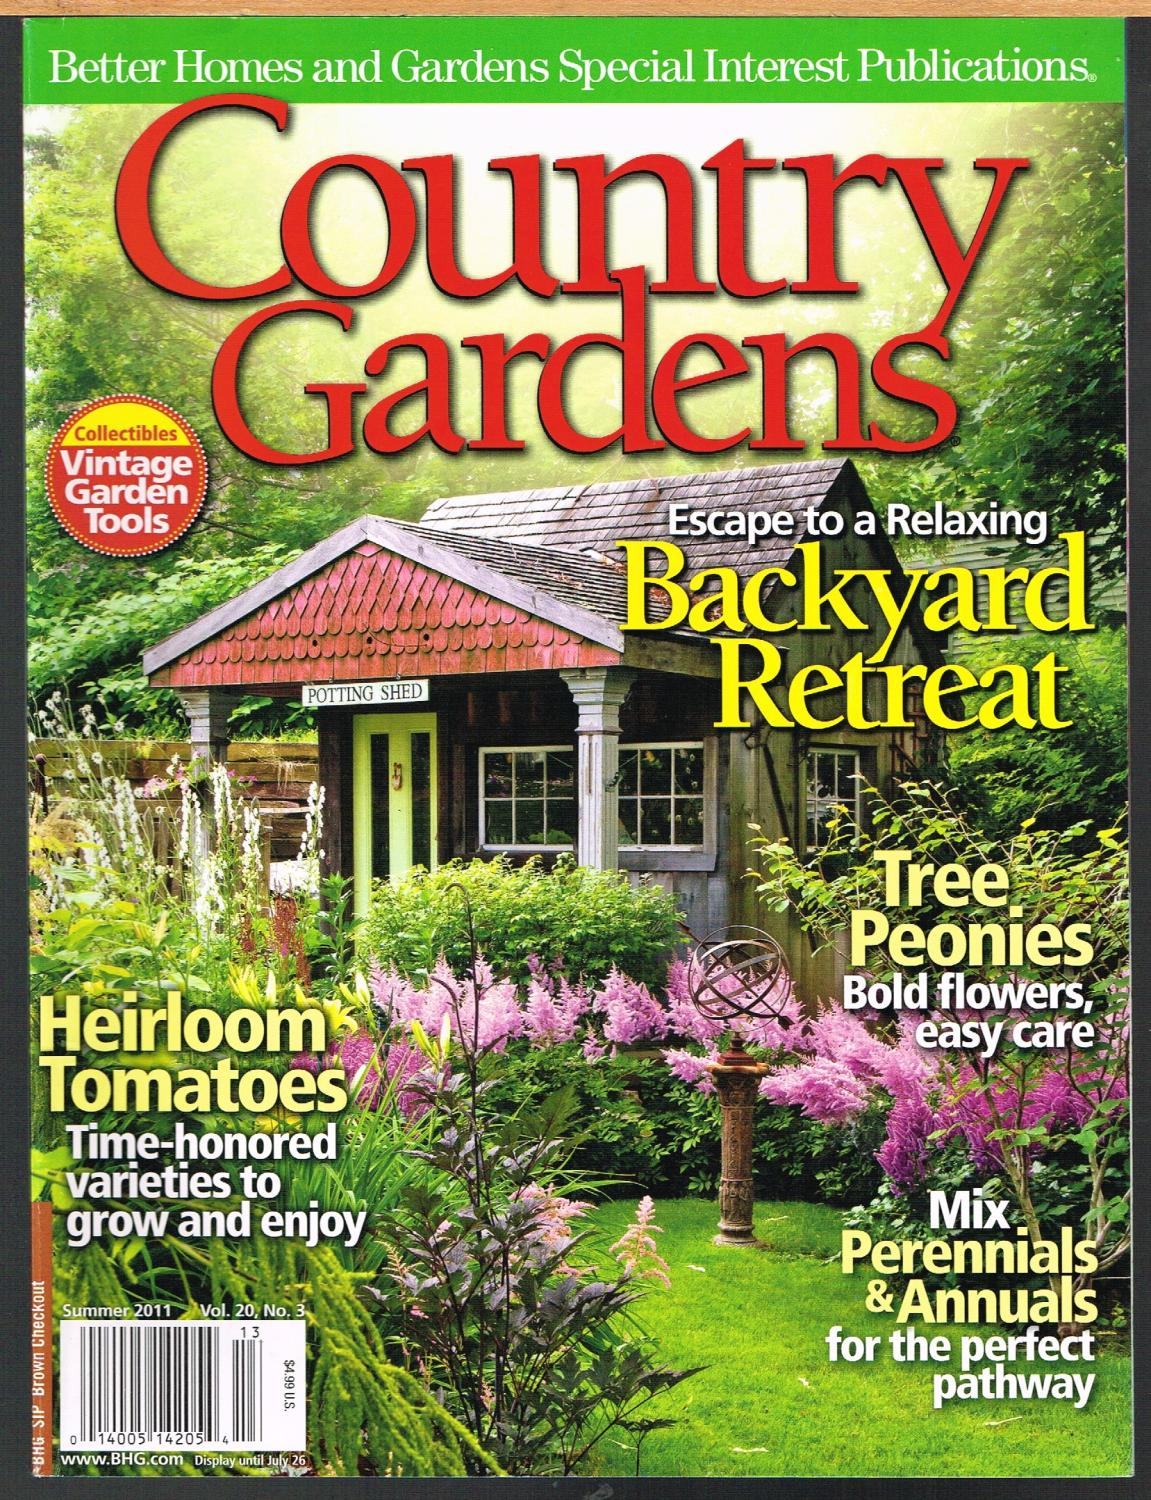 Country Gardens Summer 2011 Vol 20 No 3 Better Homes And